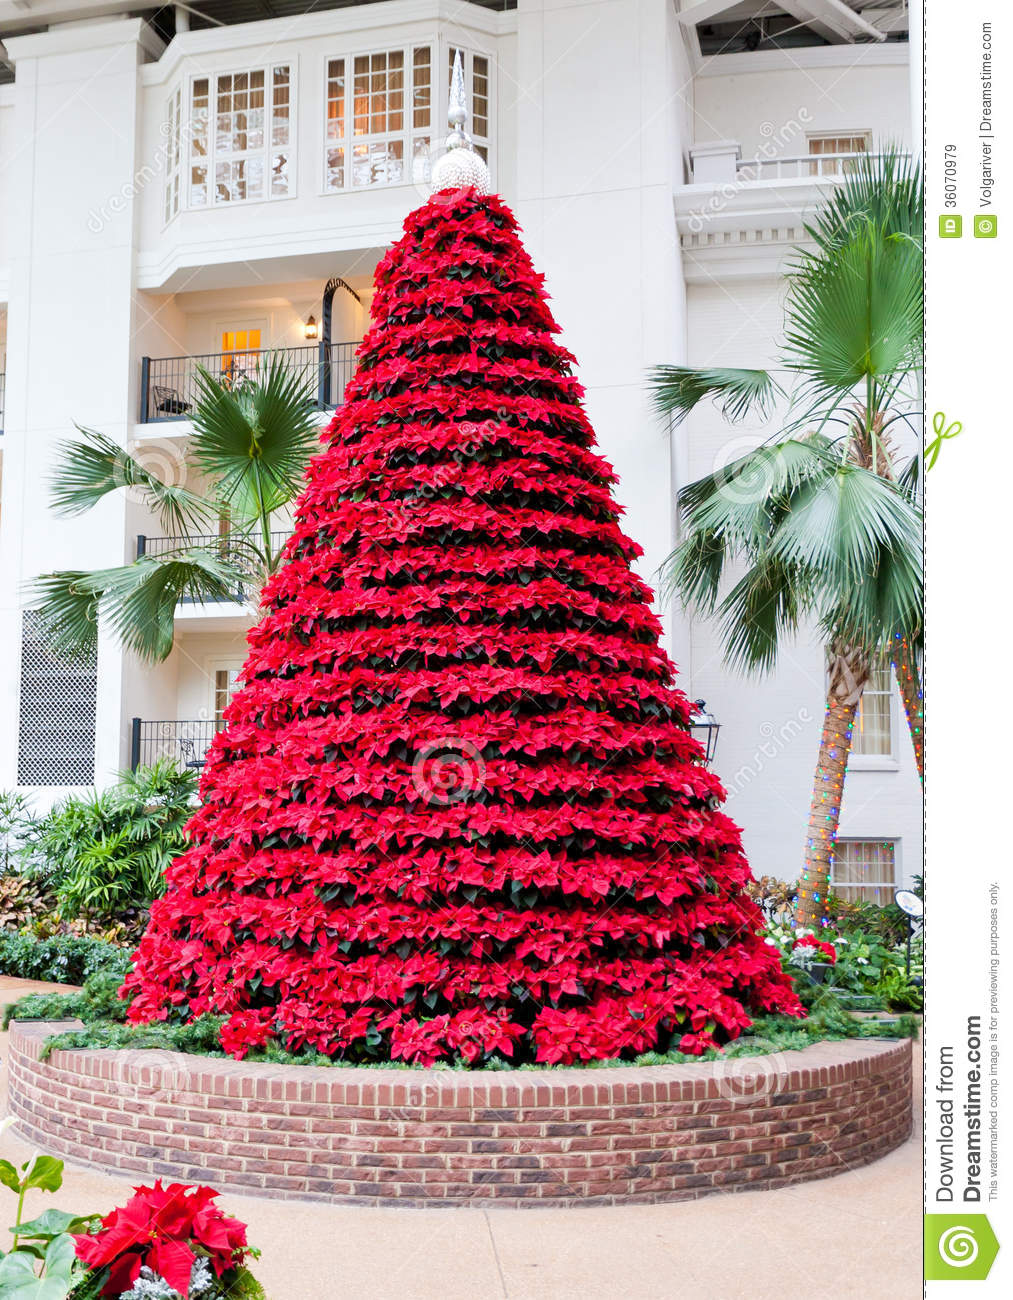 Red Poinsettias Flowers In Christmas Tree Shape. Royalty Free ...